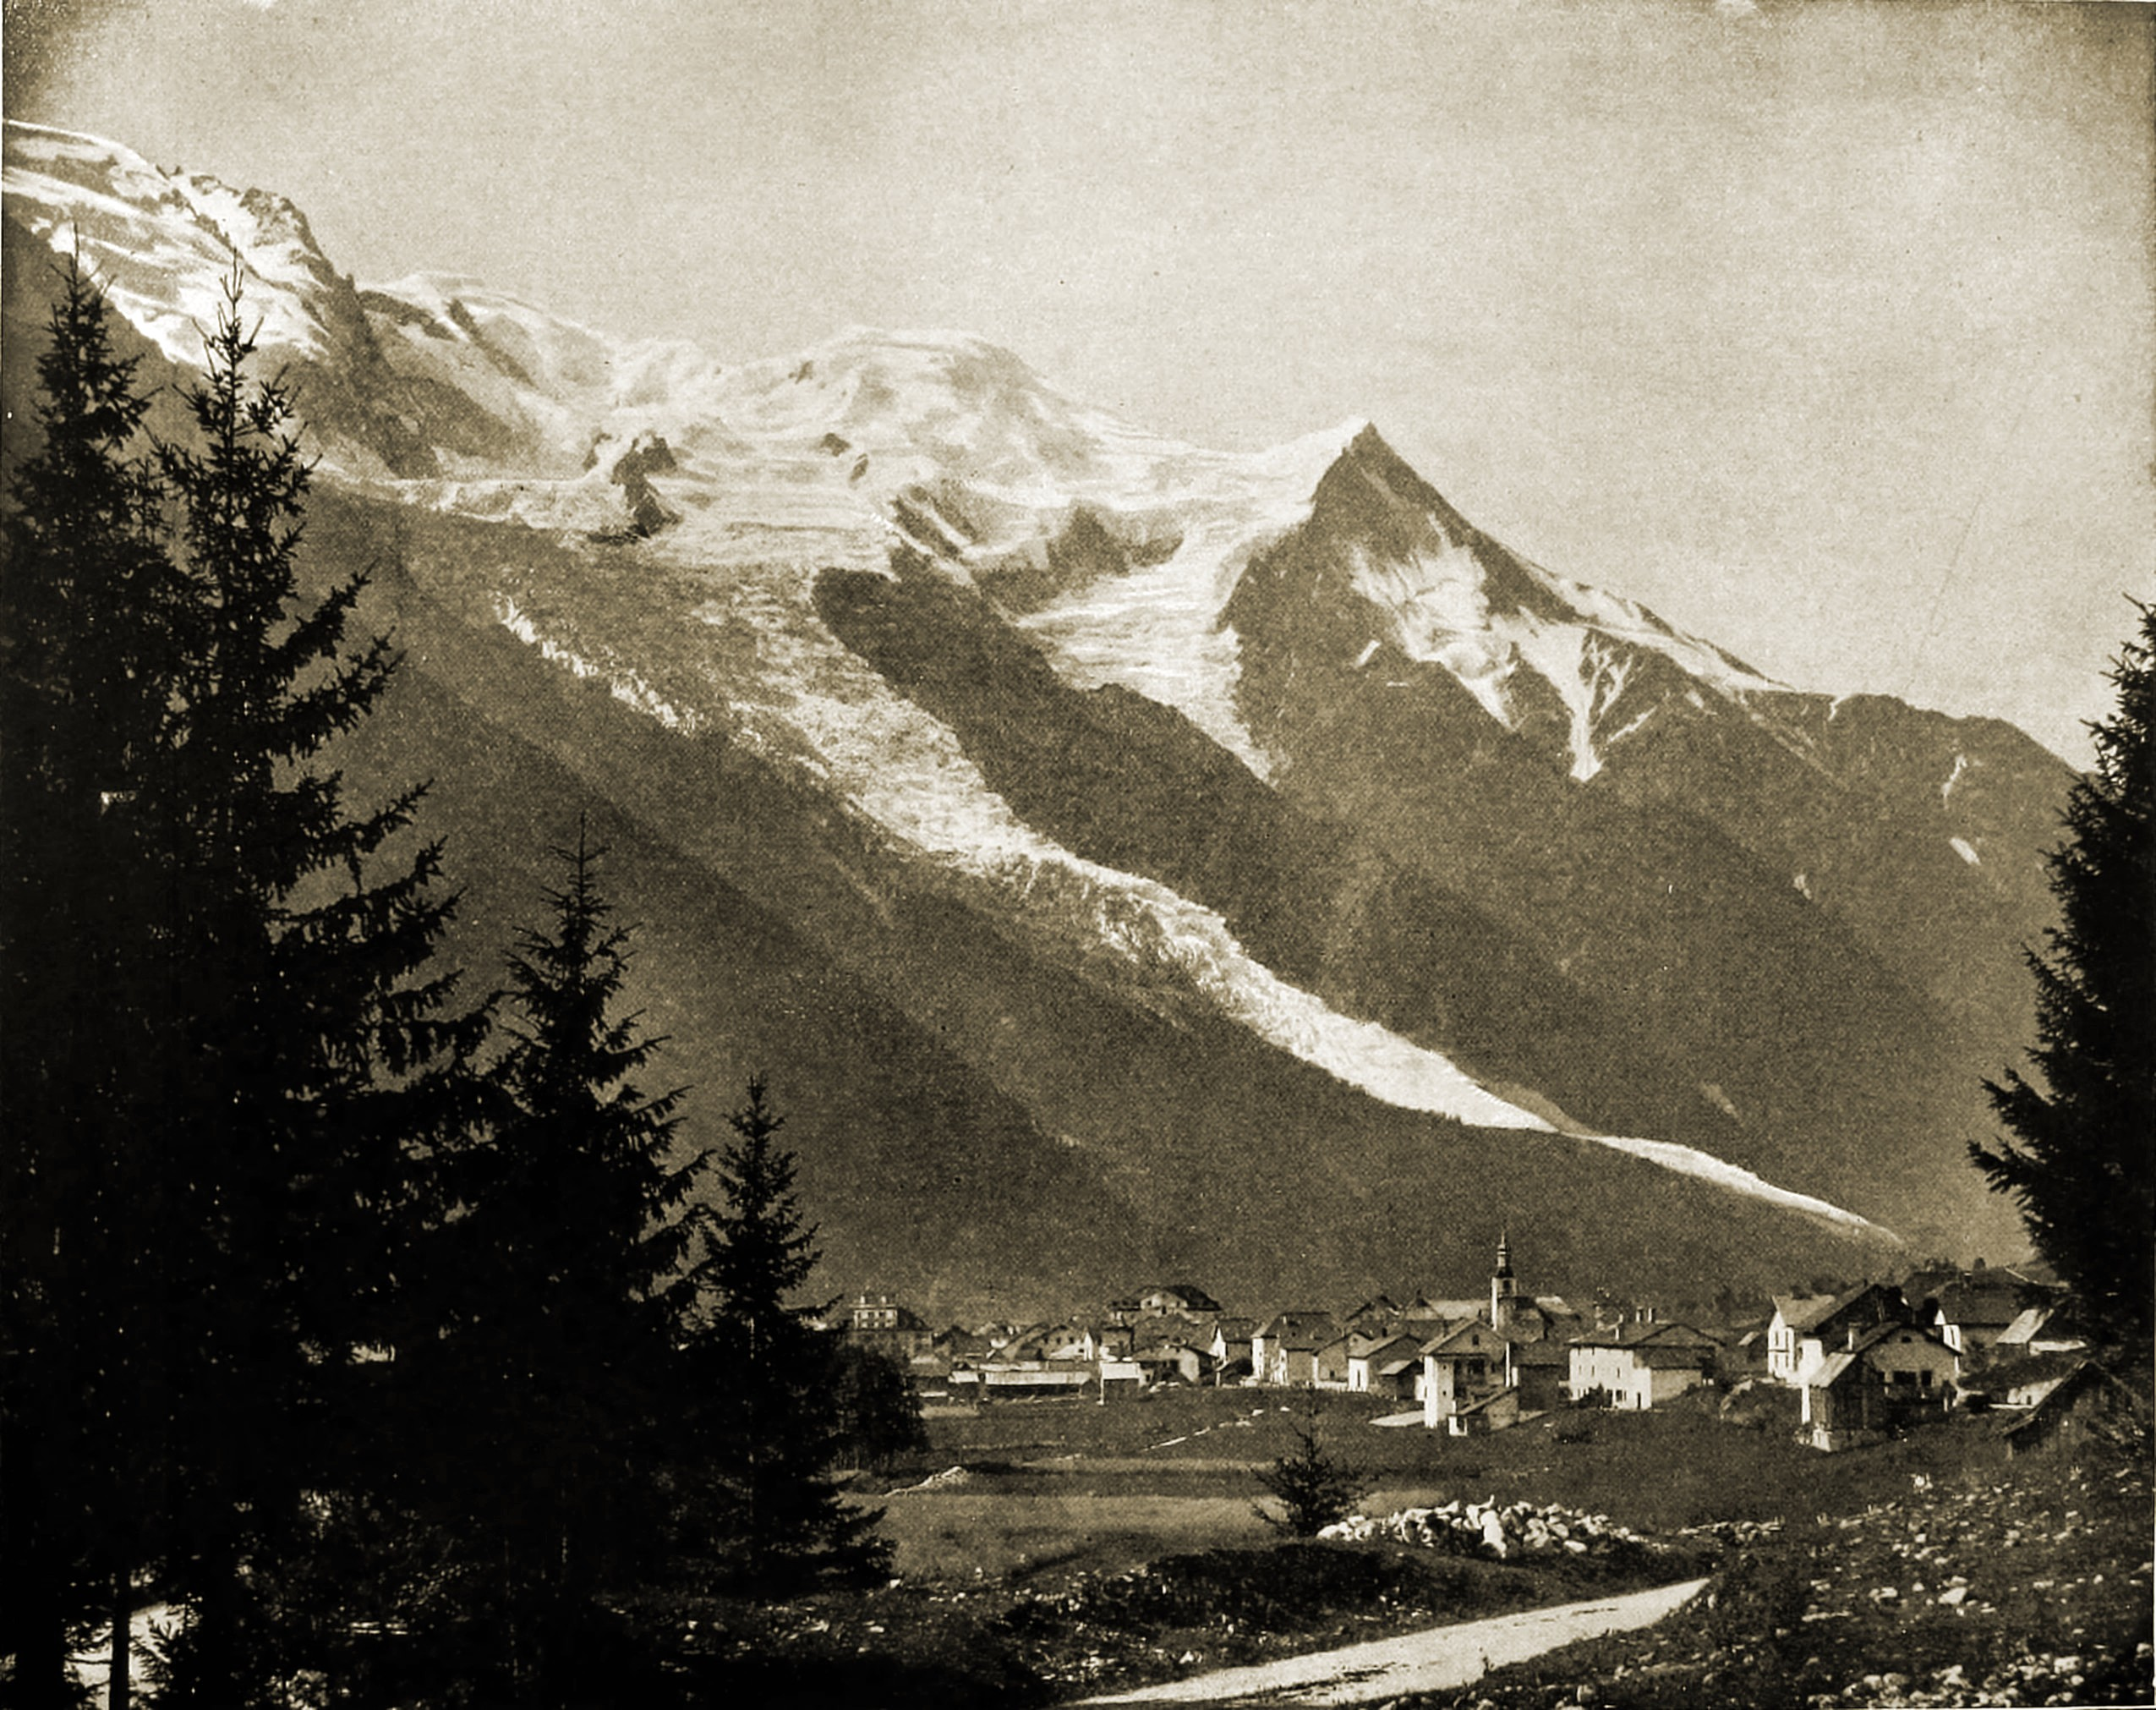 Chamonix-Mont-Blanc France about 1892